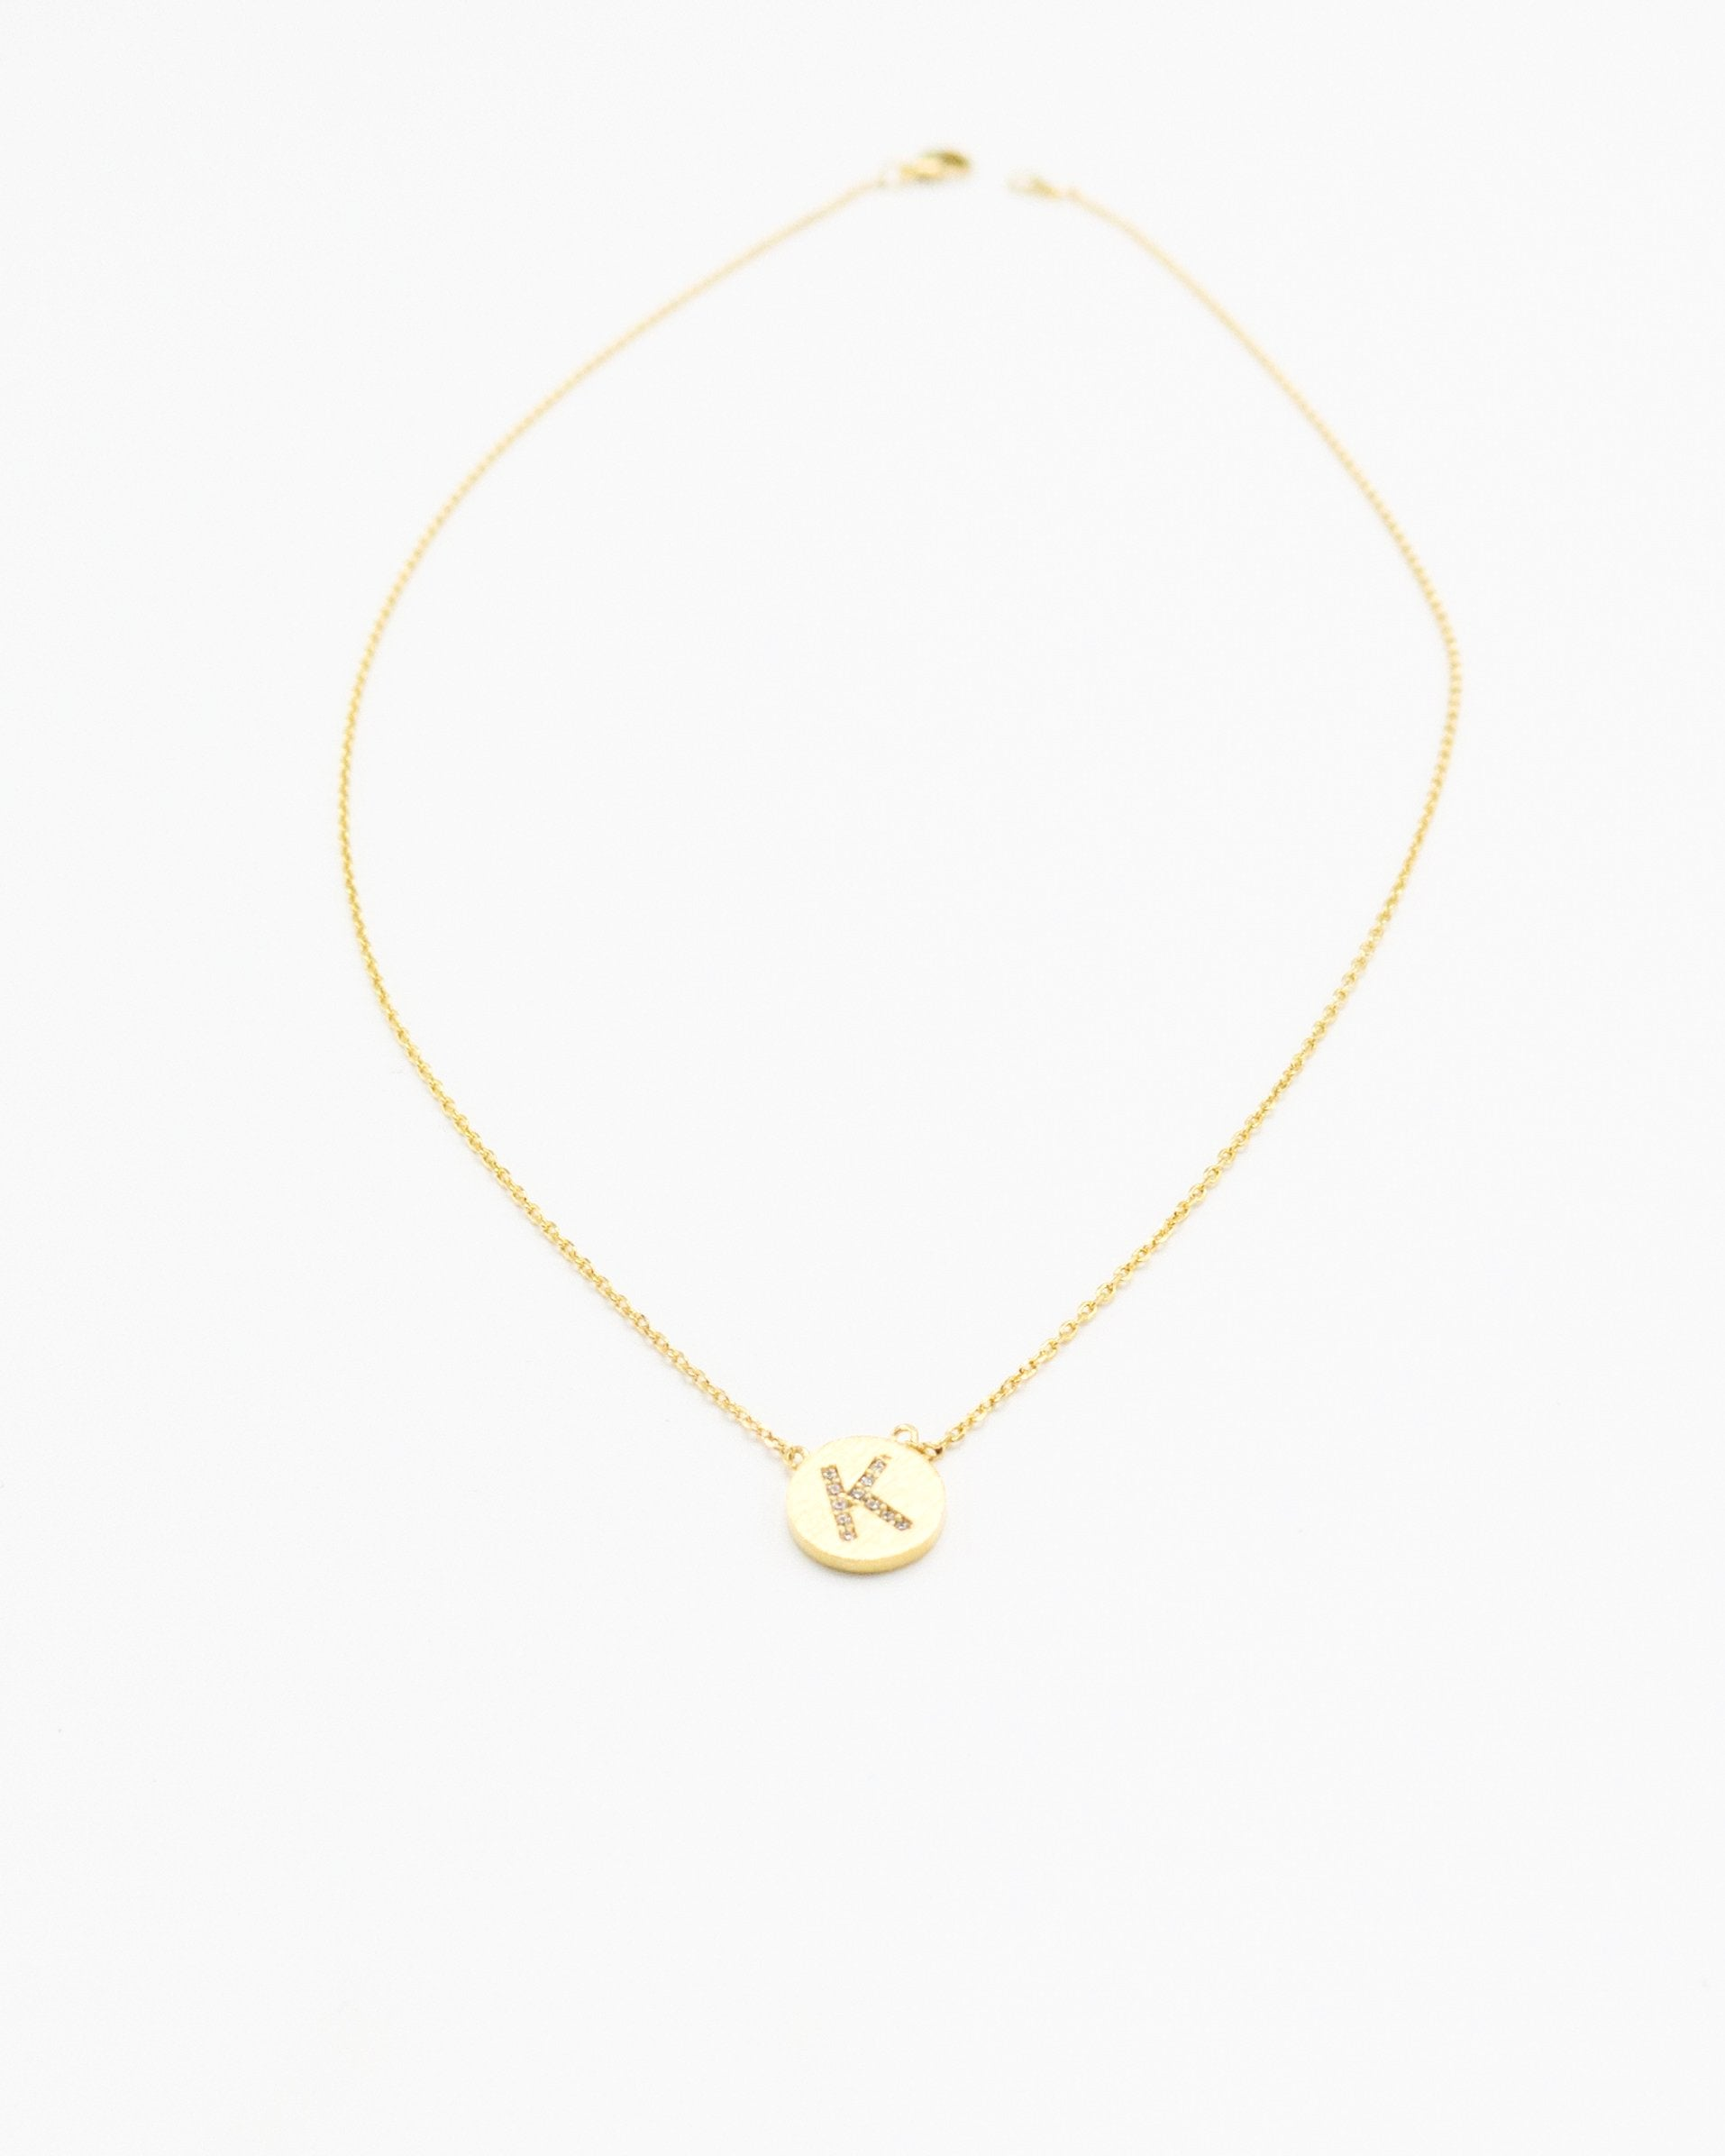 Initial Necklace in gold